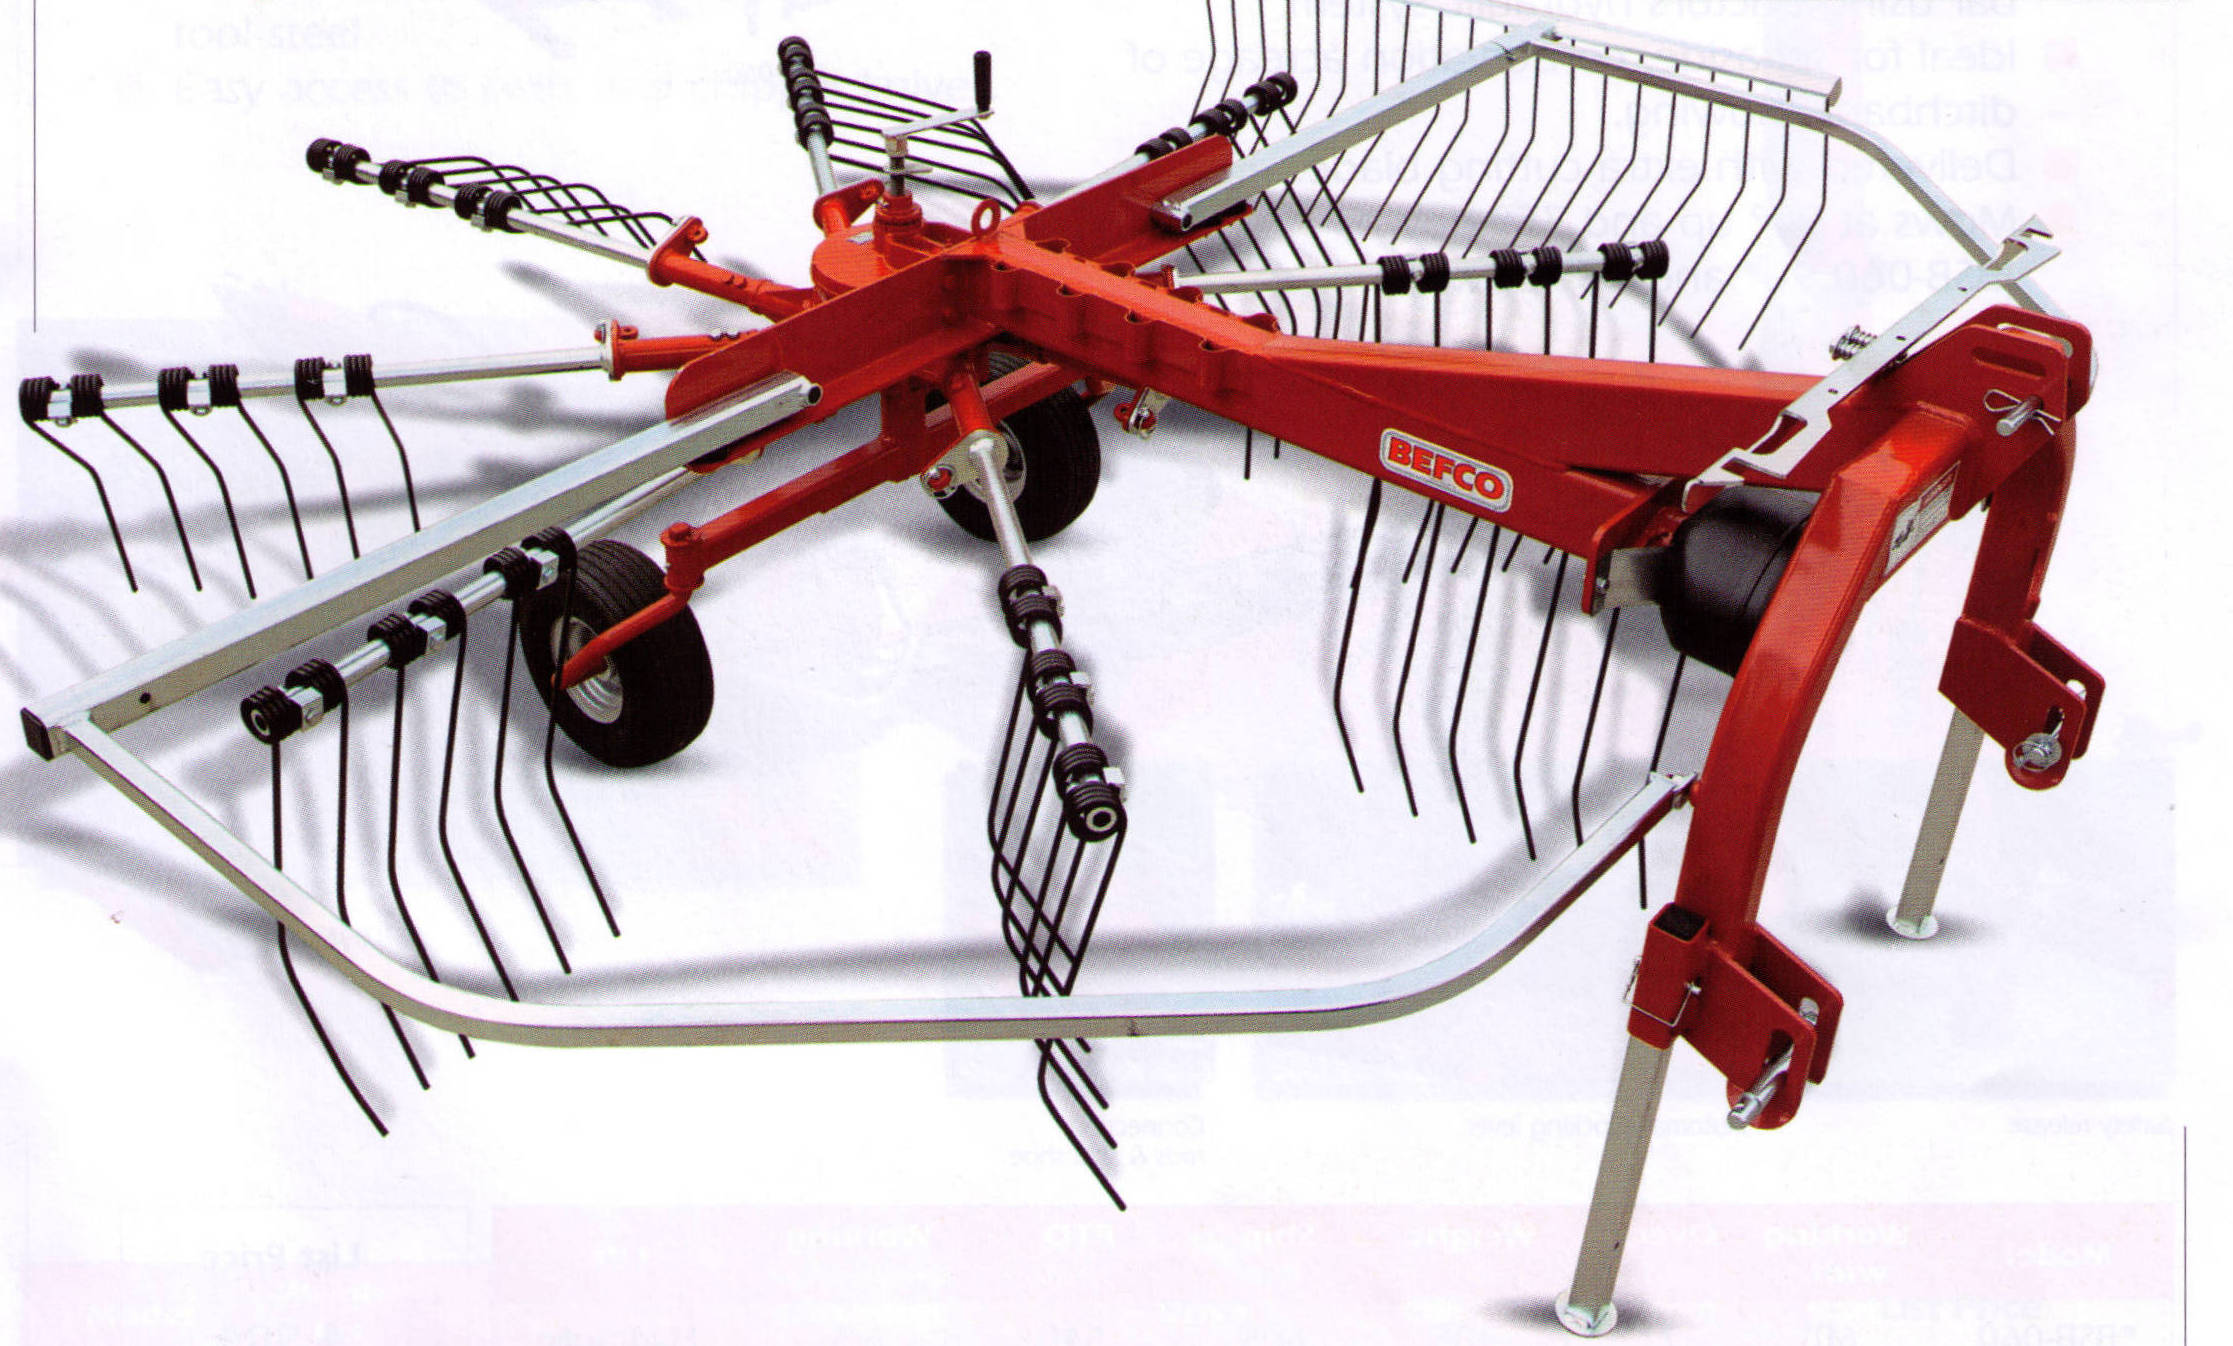 Befco Three Point Hitch Mount Windrower Rake, PTO Powered